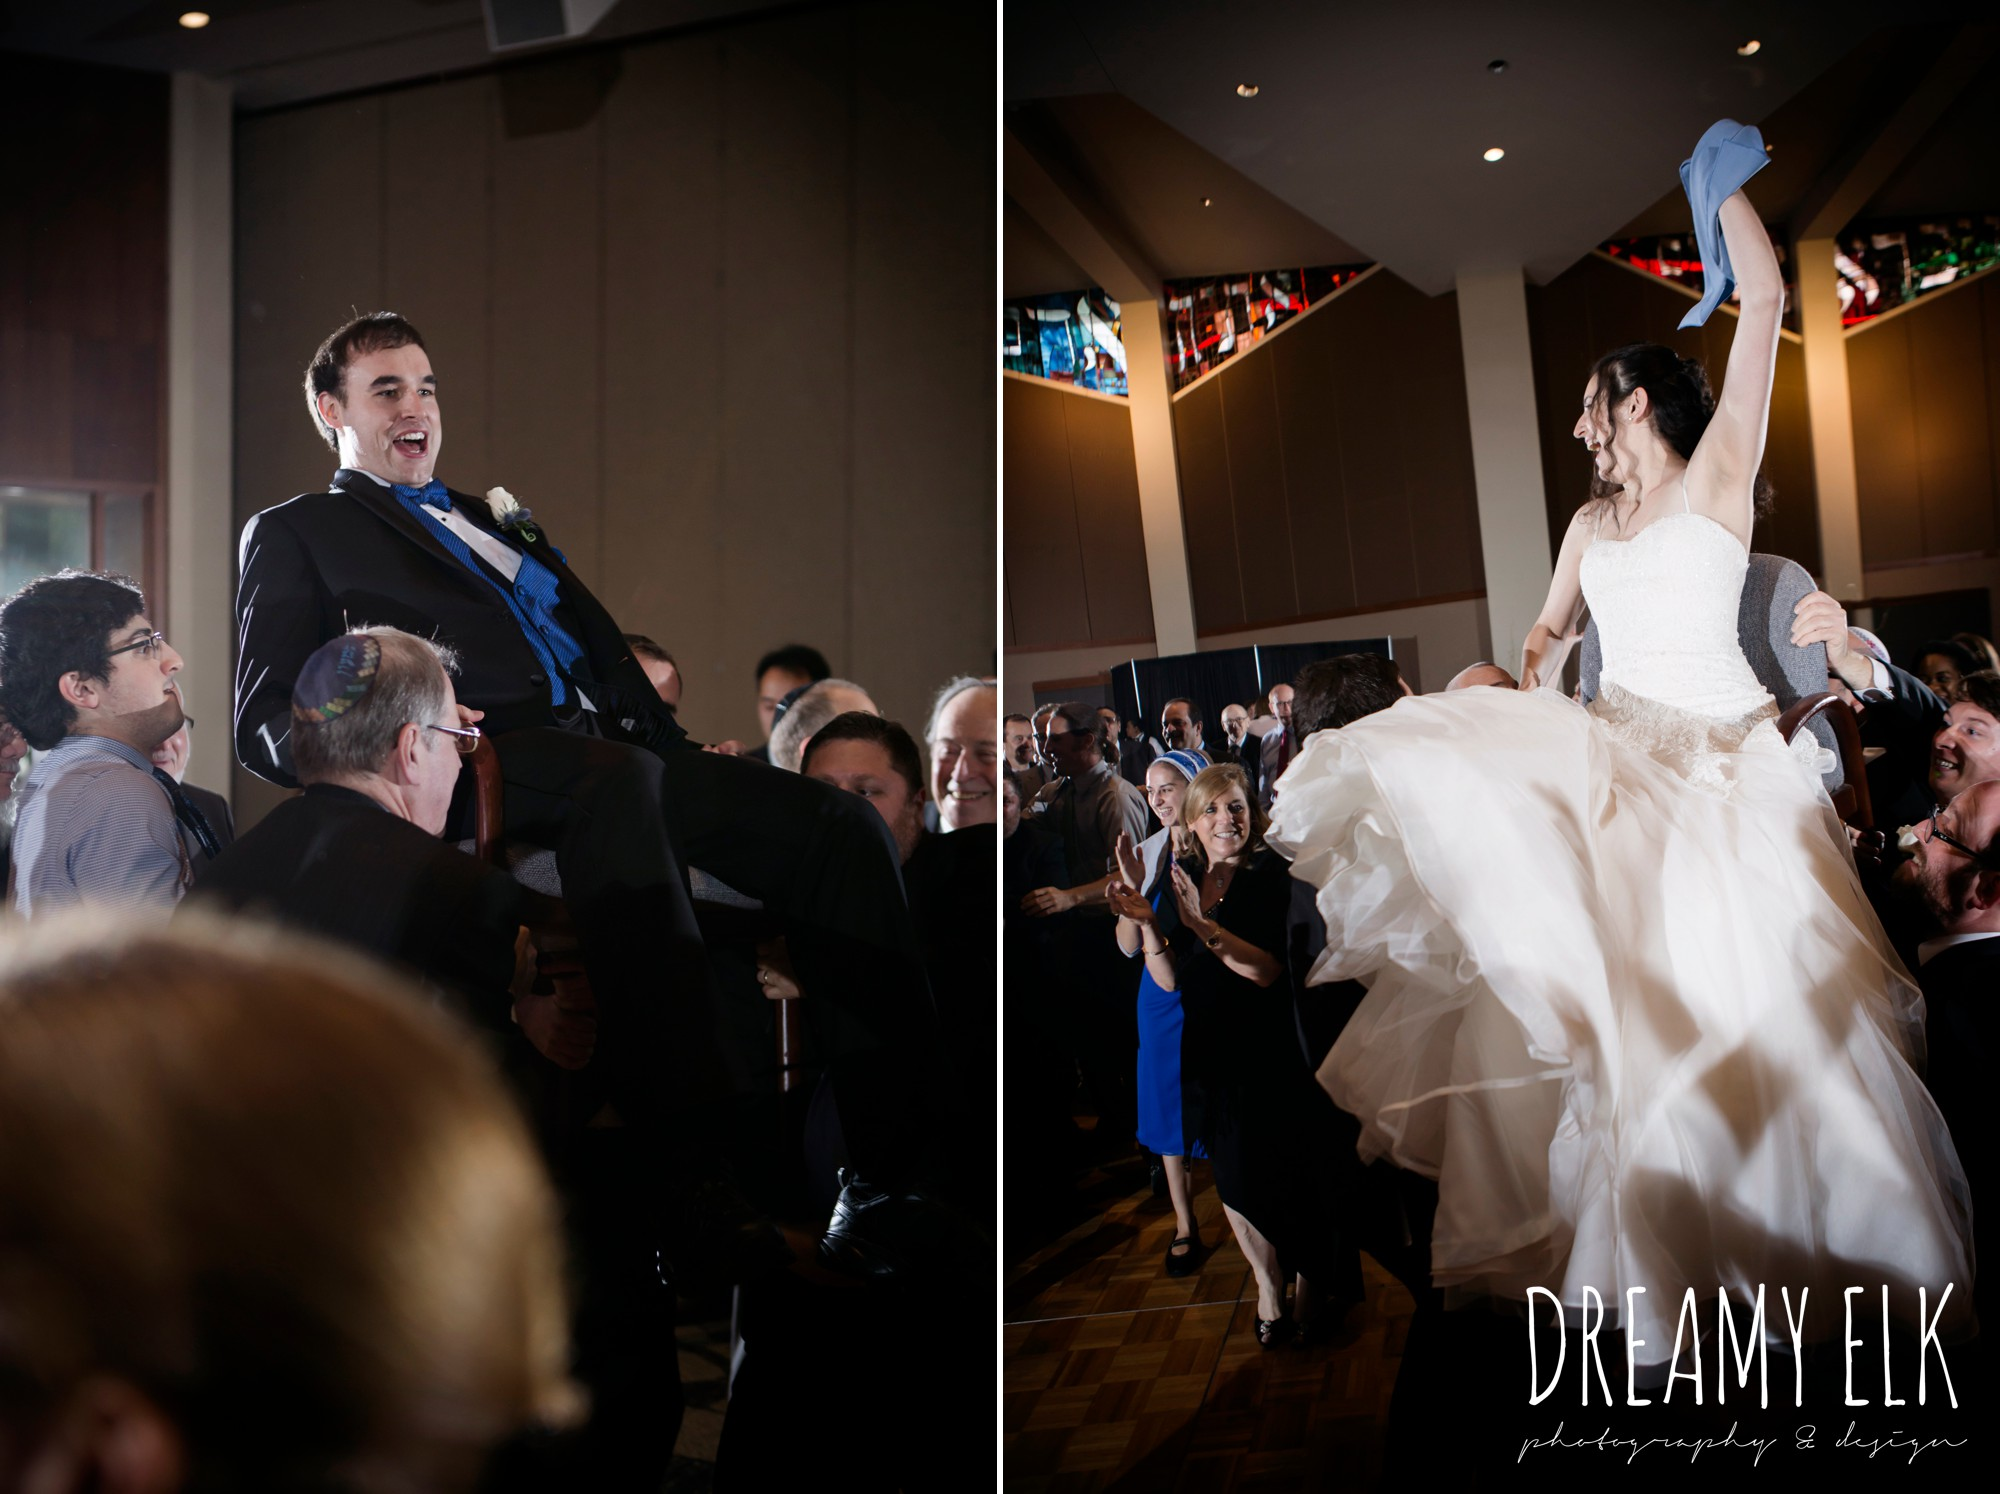 bride and groom in chairs, horah dance, summer june jewish wedding photo {dreamy elk photography and design}